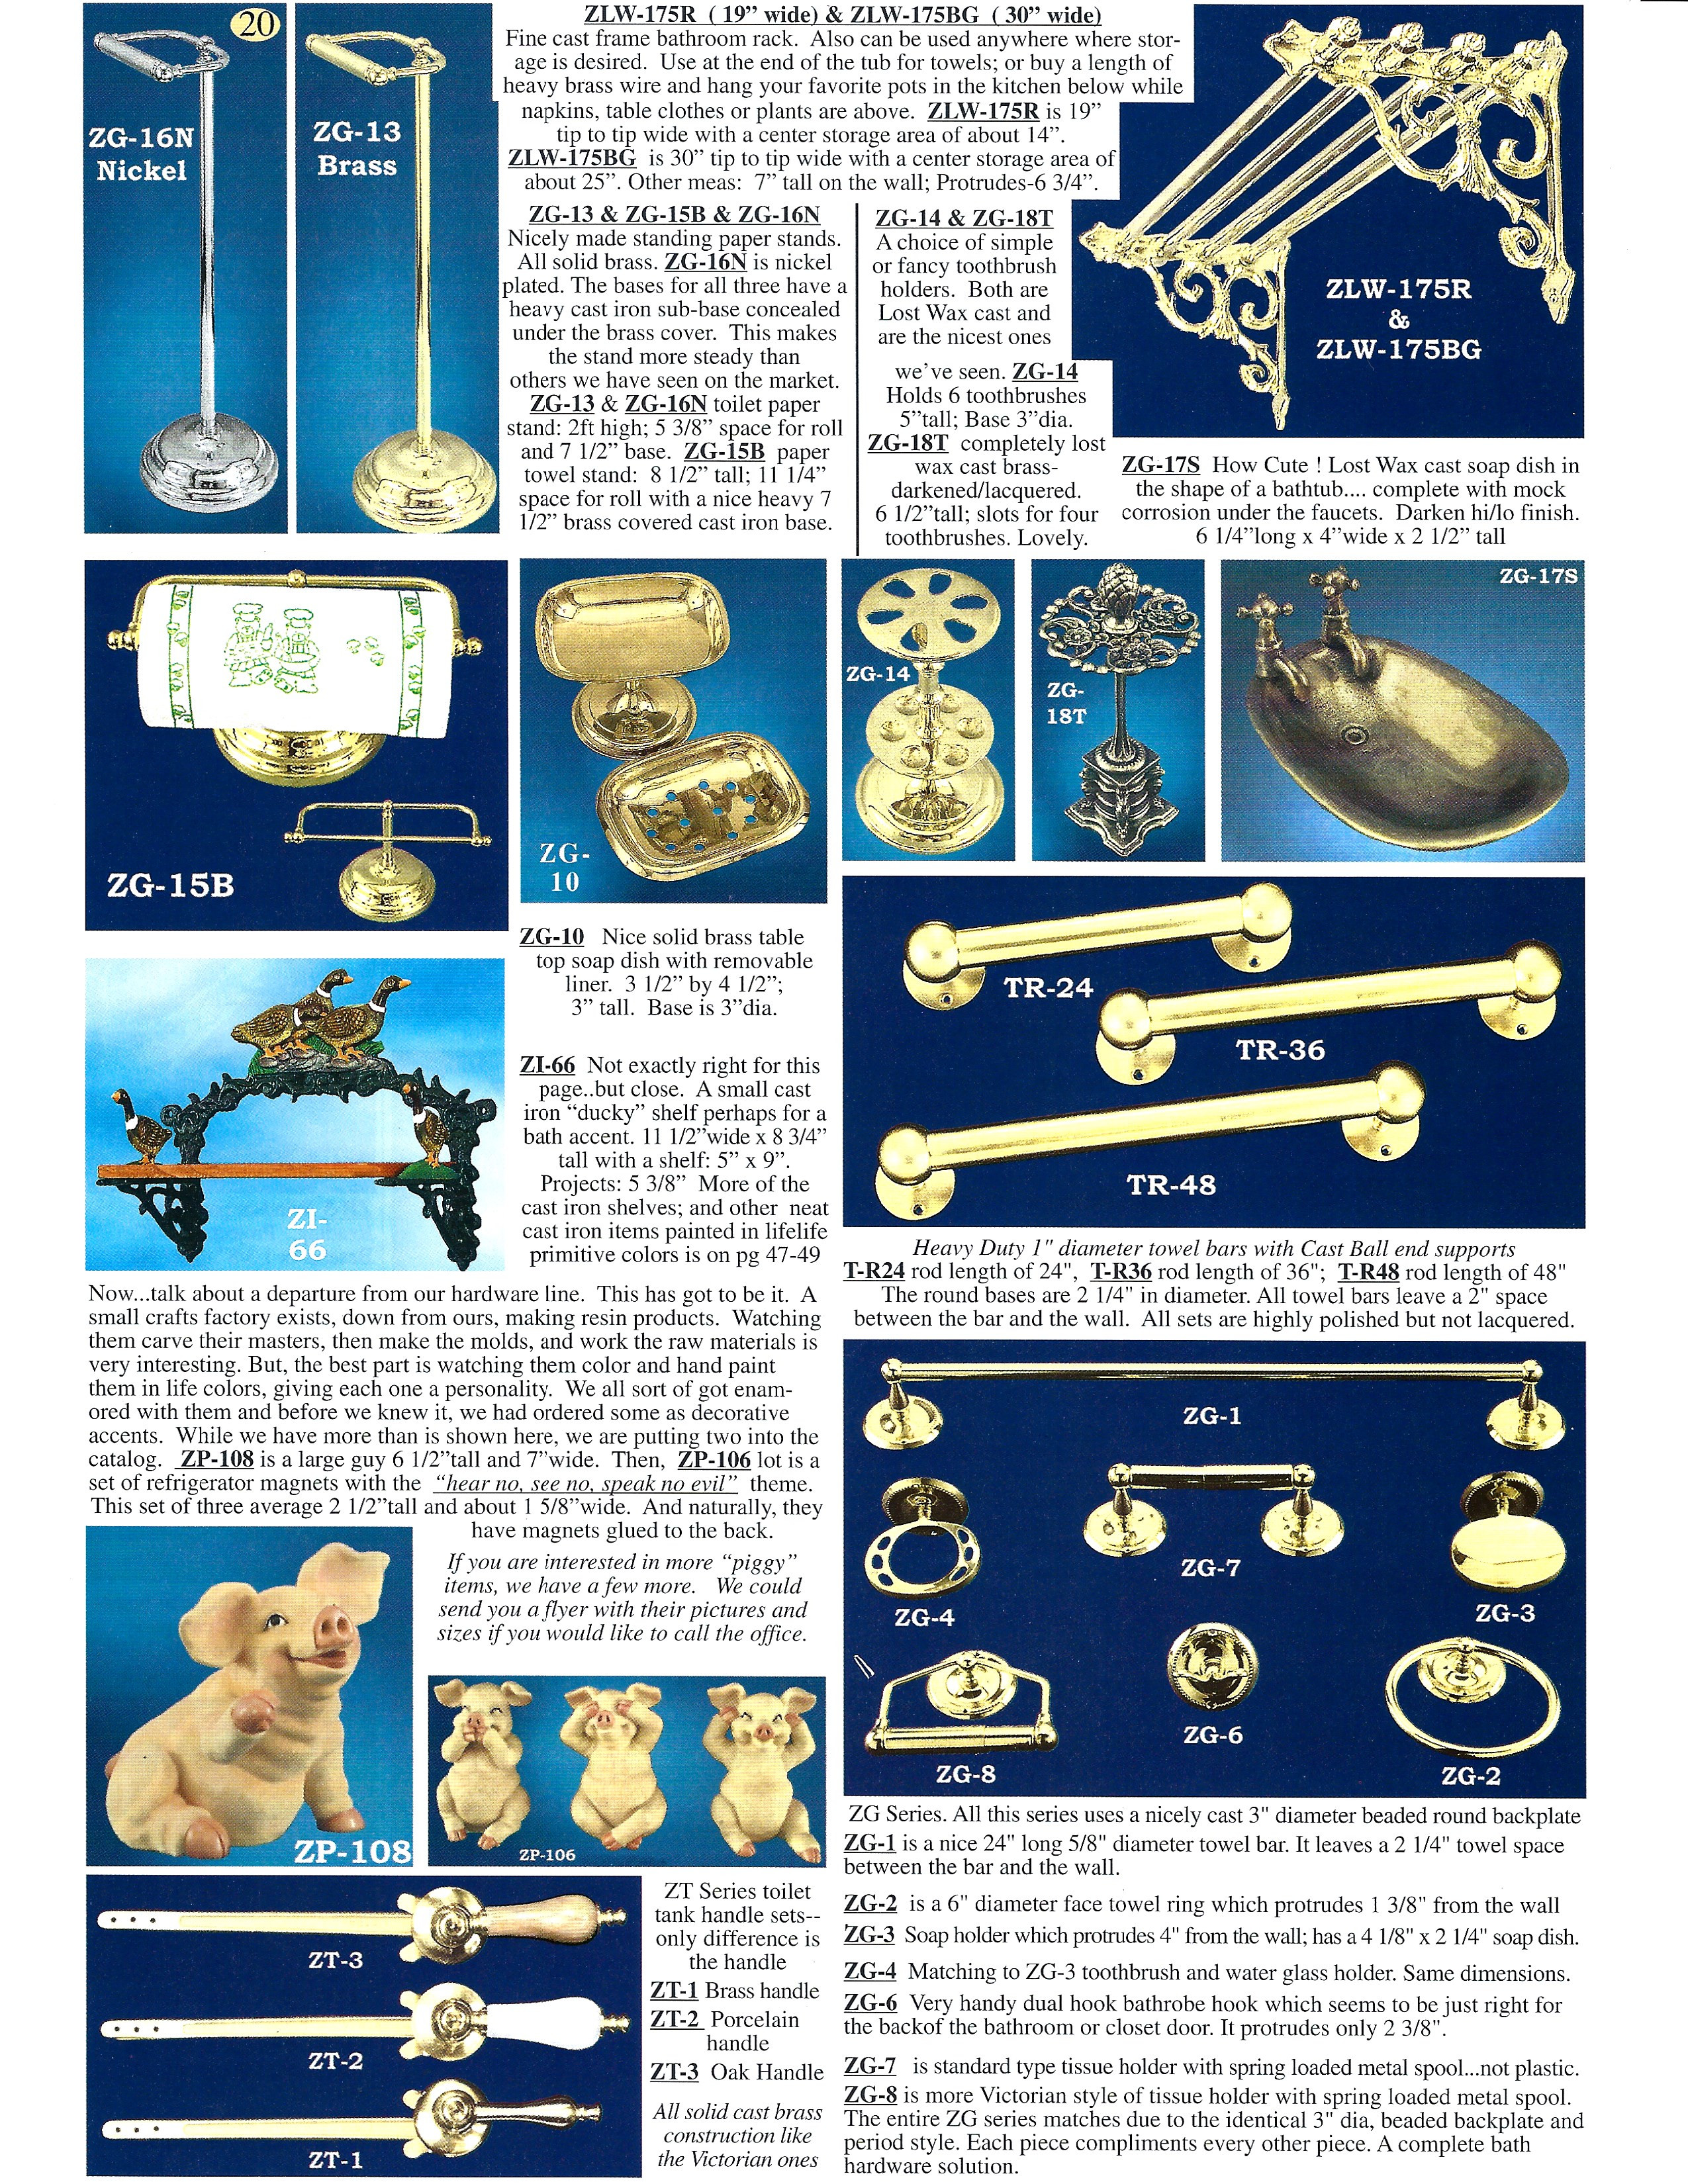 Catalog page 20